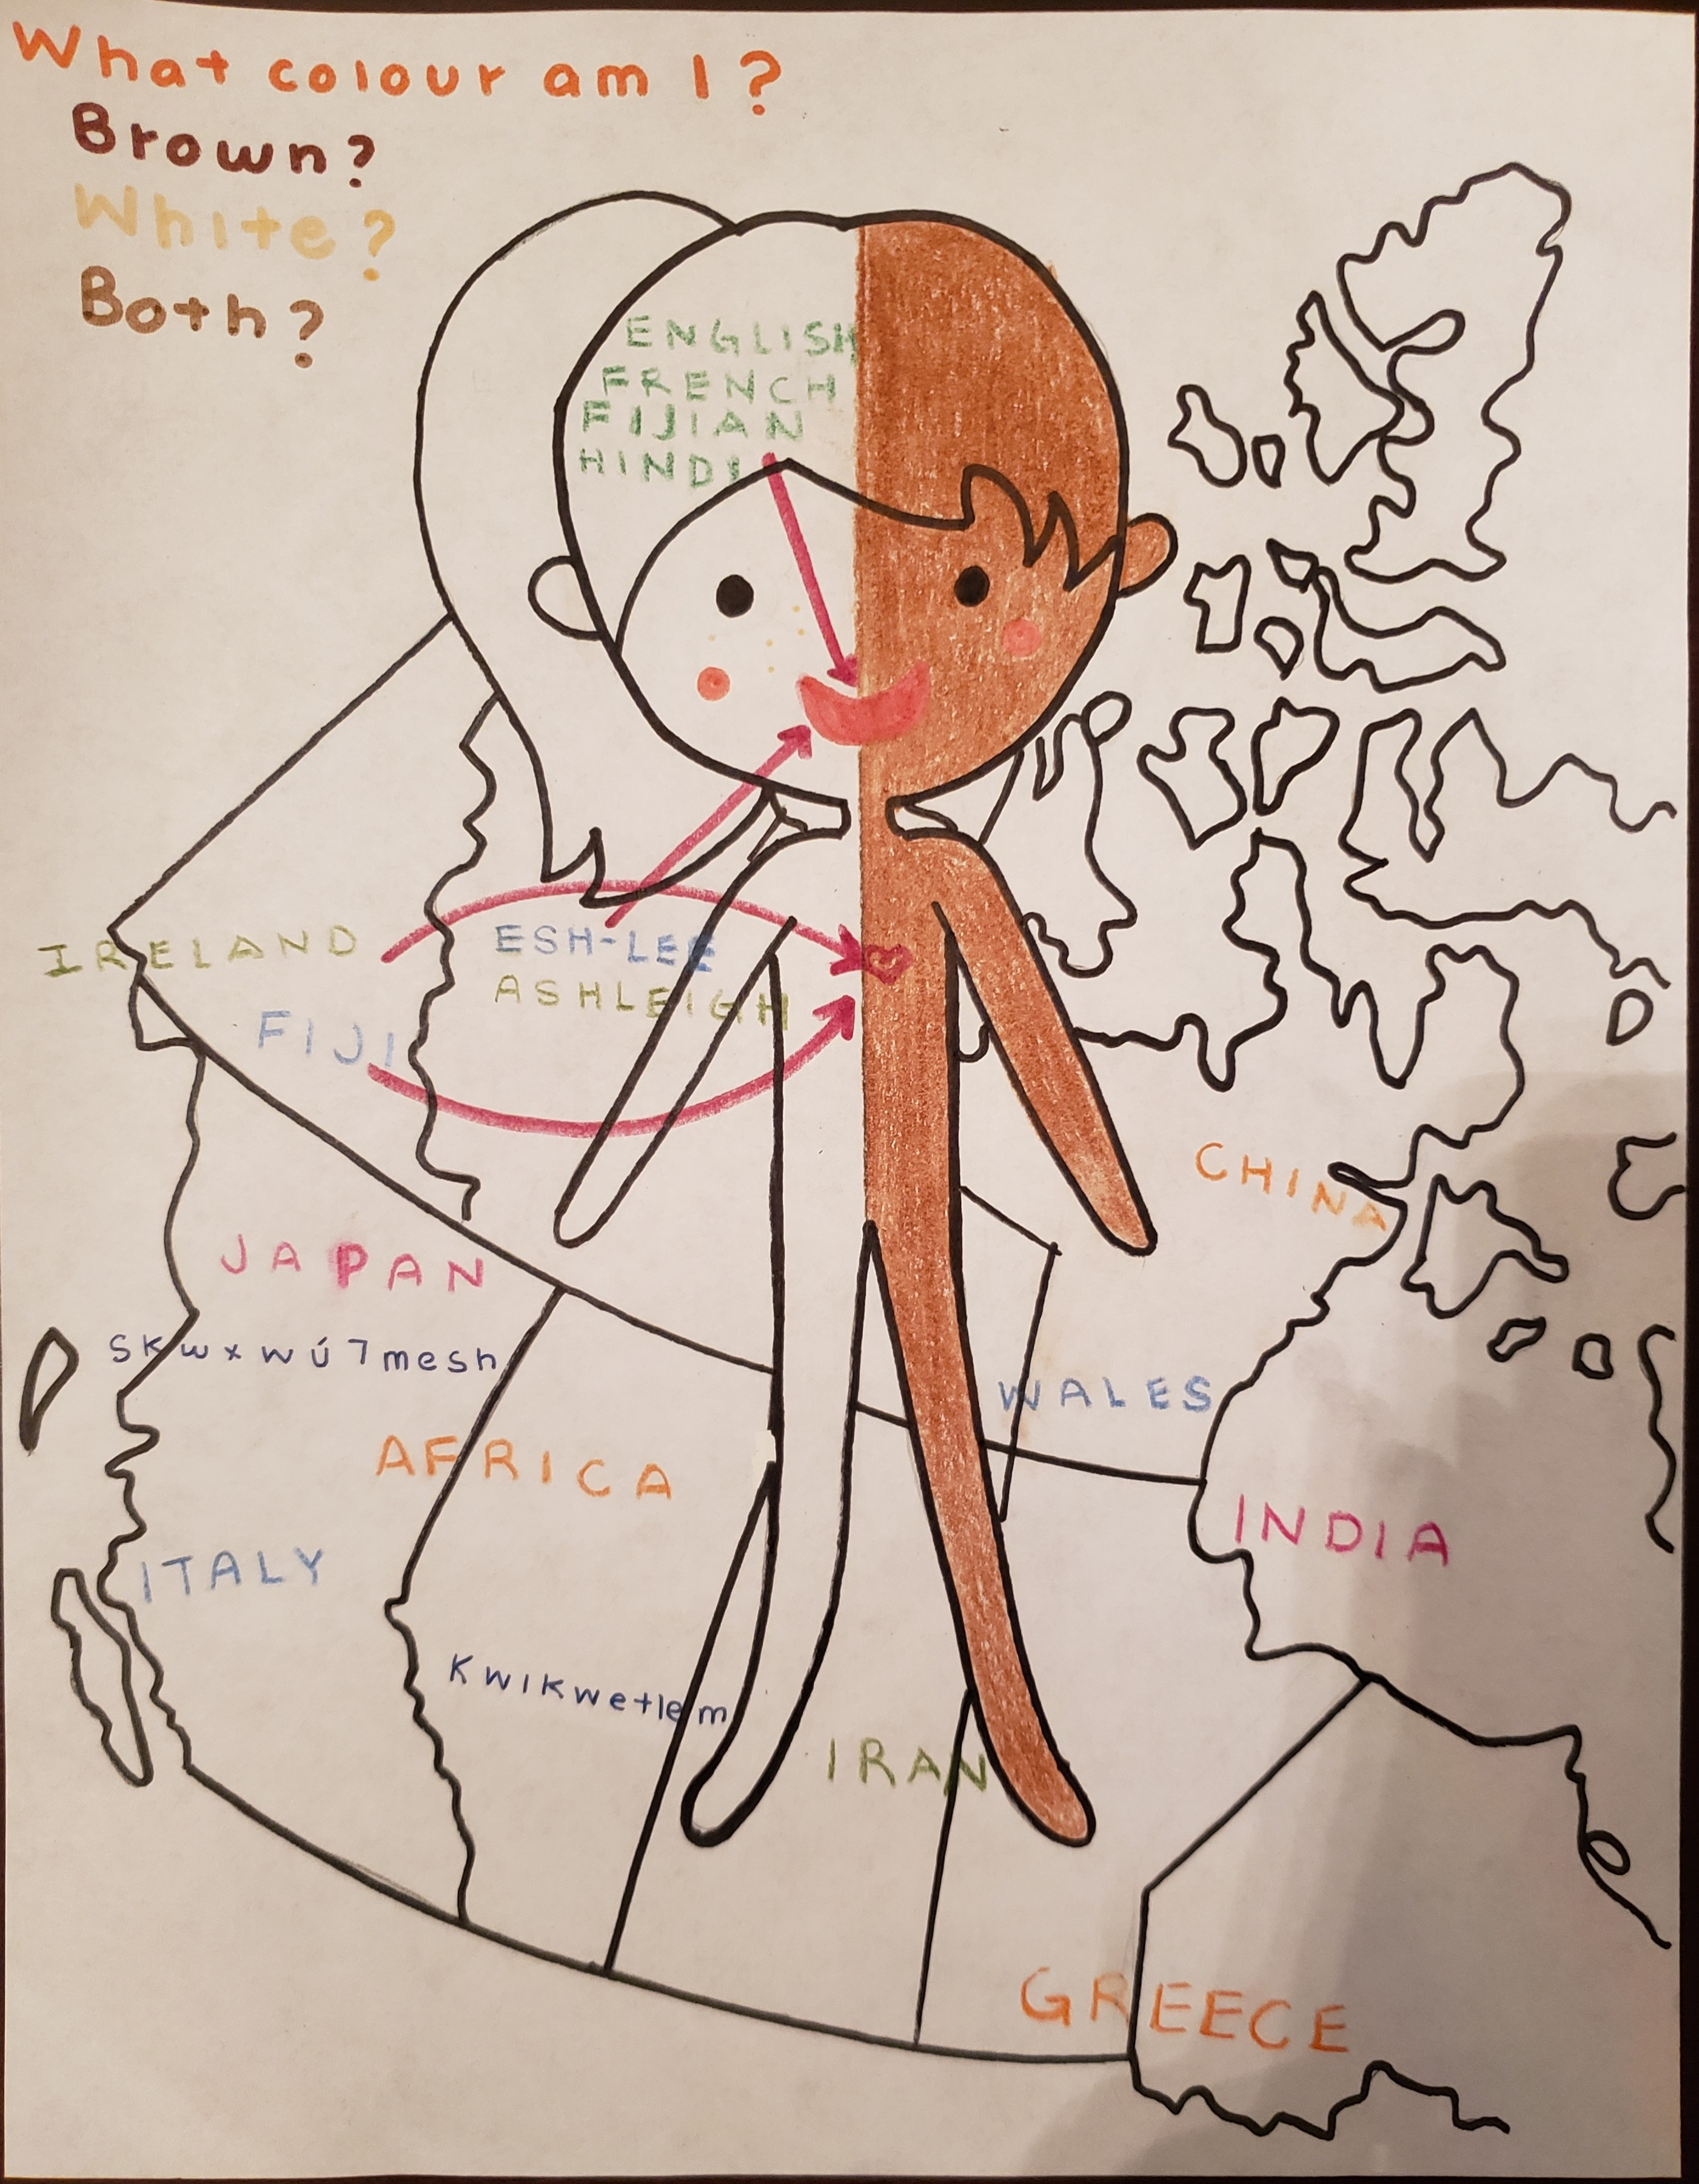 """Ashley's Plurilingual Identity drawing. Image shows a stick figure standing in front of a map of Canada (with place names from around the world). Text reads: What colour am I? Brown? White? Both?  Over the head, the stick figure has the words """"English, French, Fijian, Hindi."""" The names Esh-lee and Ashleigh are also written on the image."""